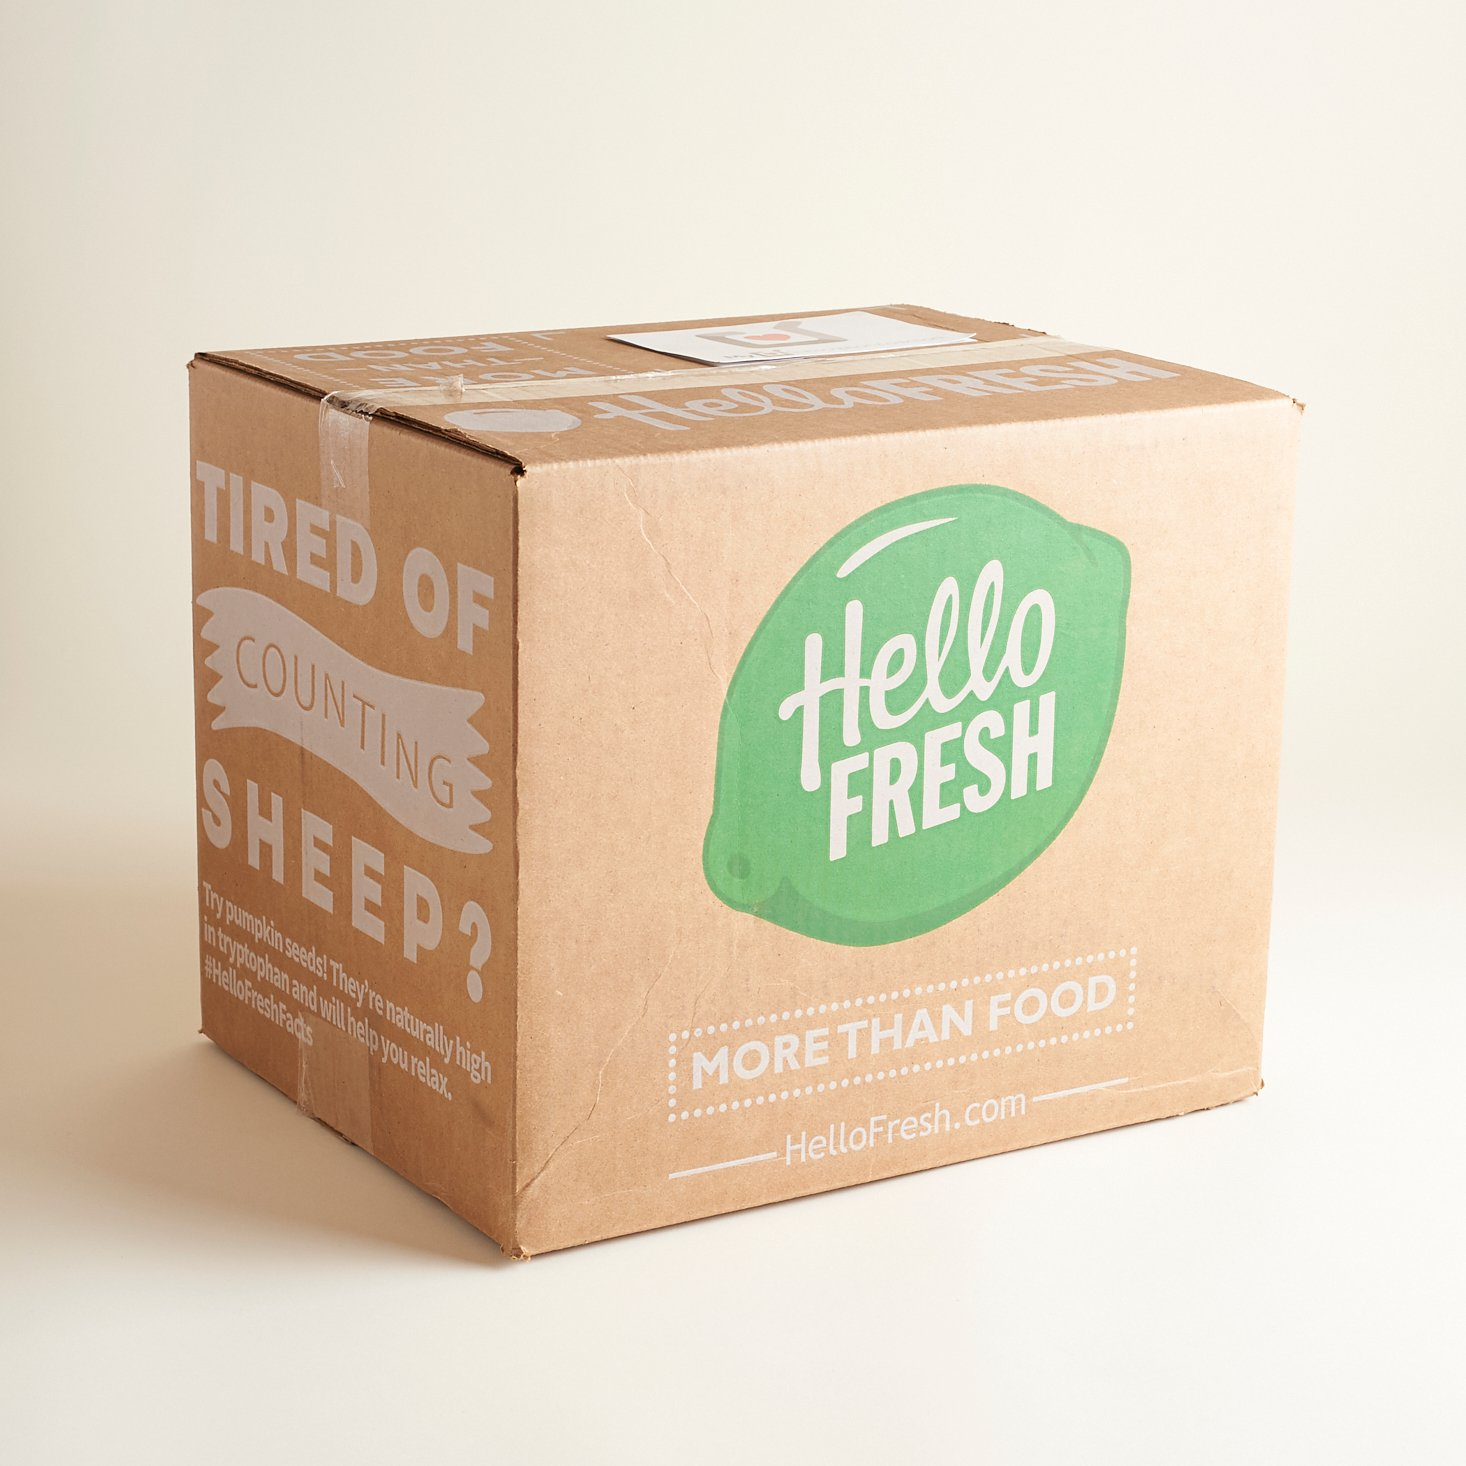 Subscription Box Deals - May 20, 2017 - Hello Fresh